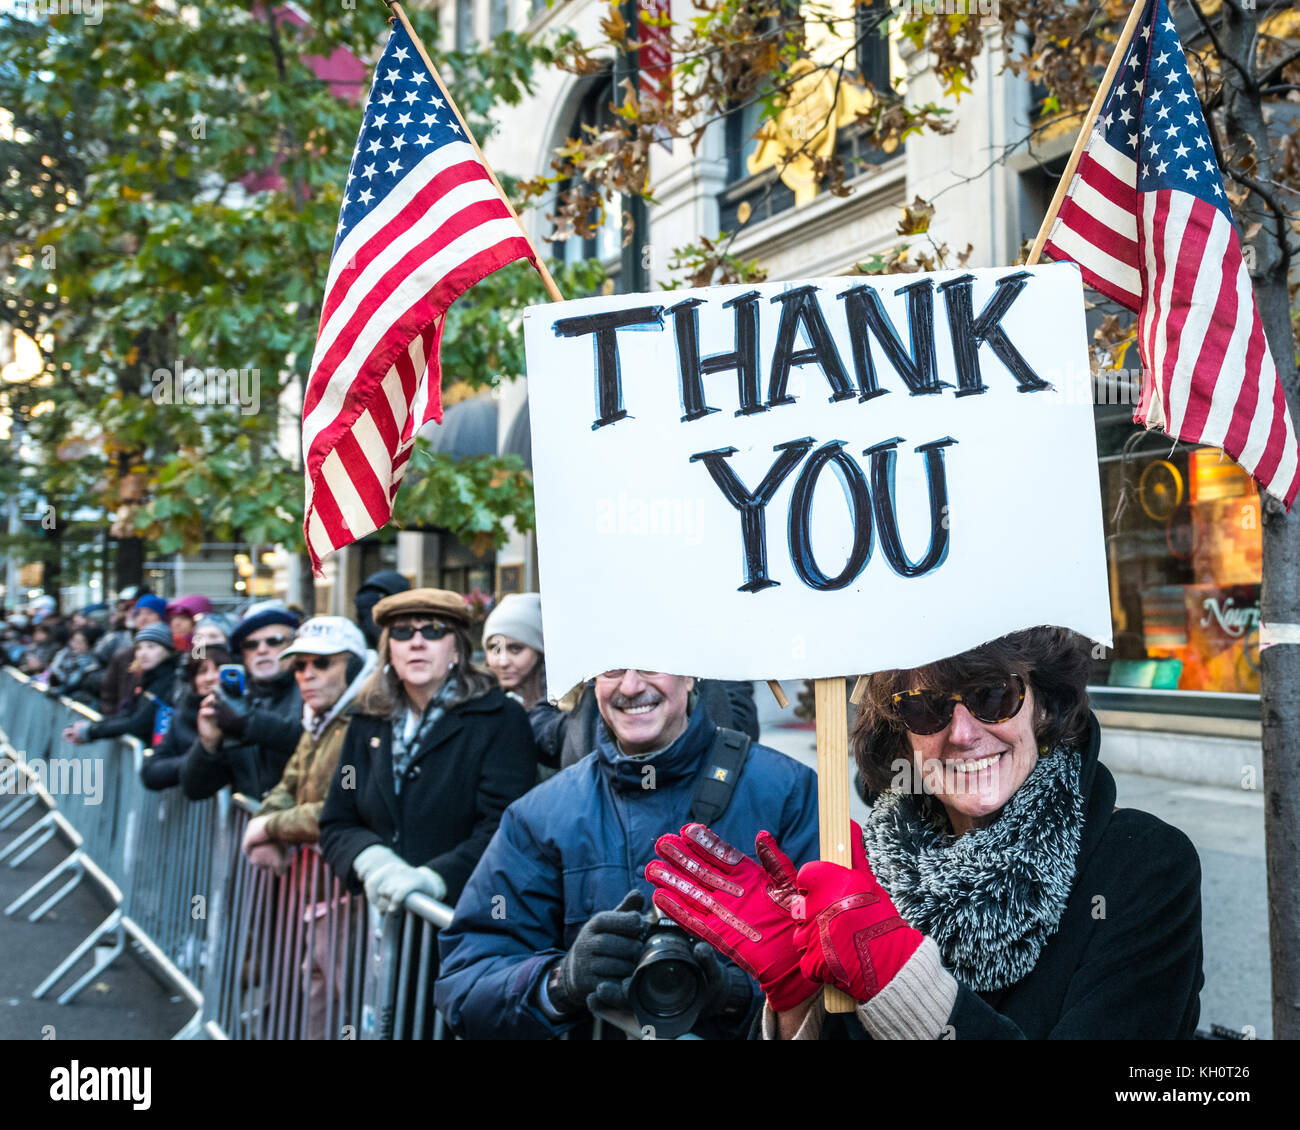 New York, USA, 11 Nov 2017.  Spectators salute participants as they march through New York's Fifth Avenue during - Stock Image